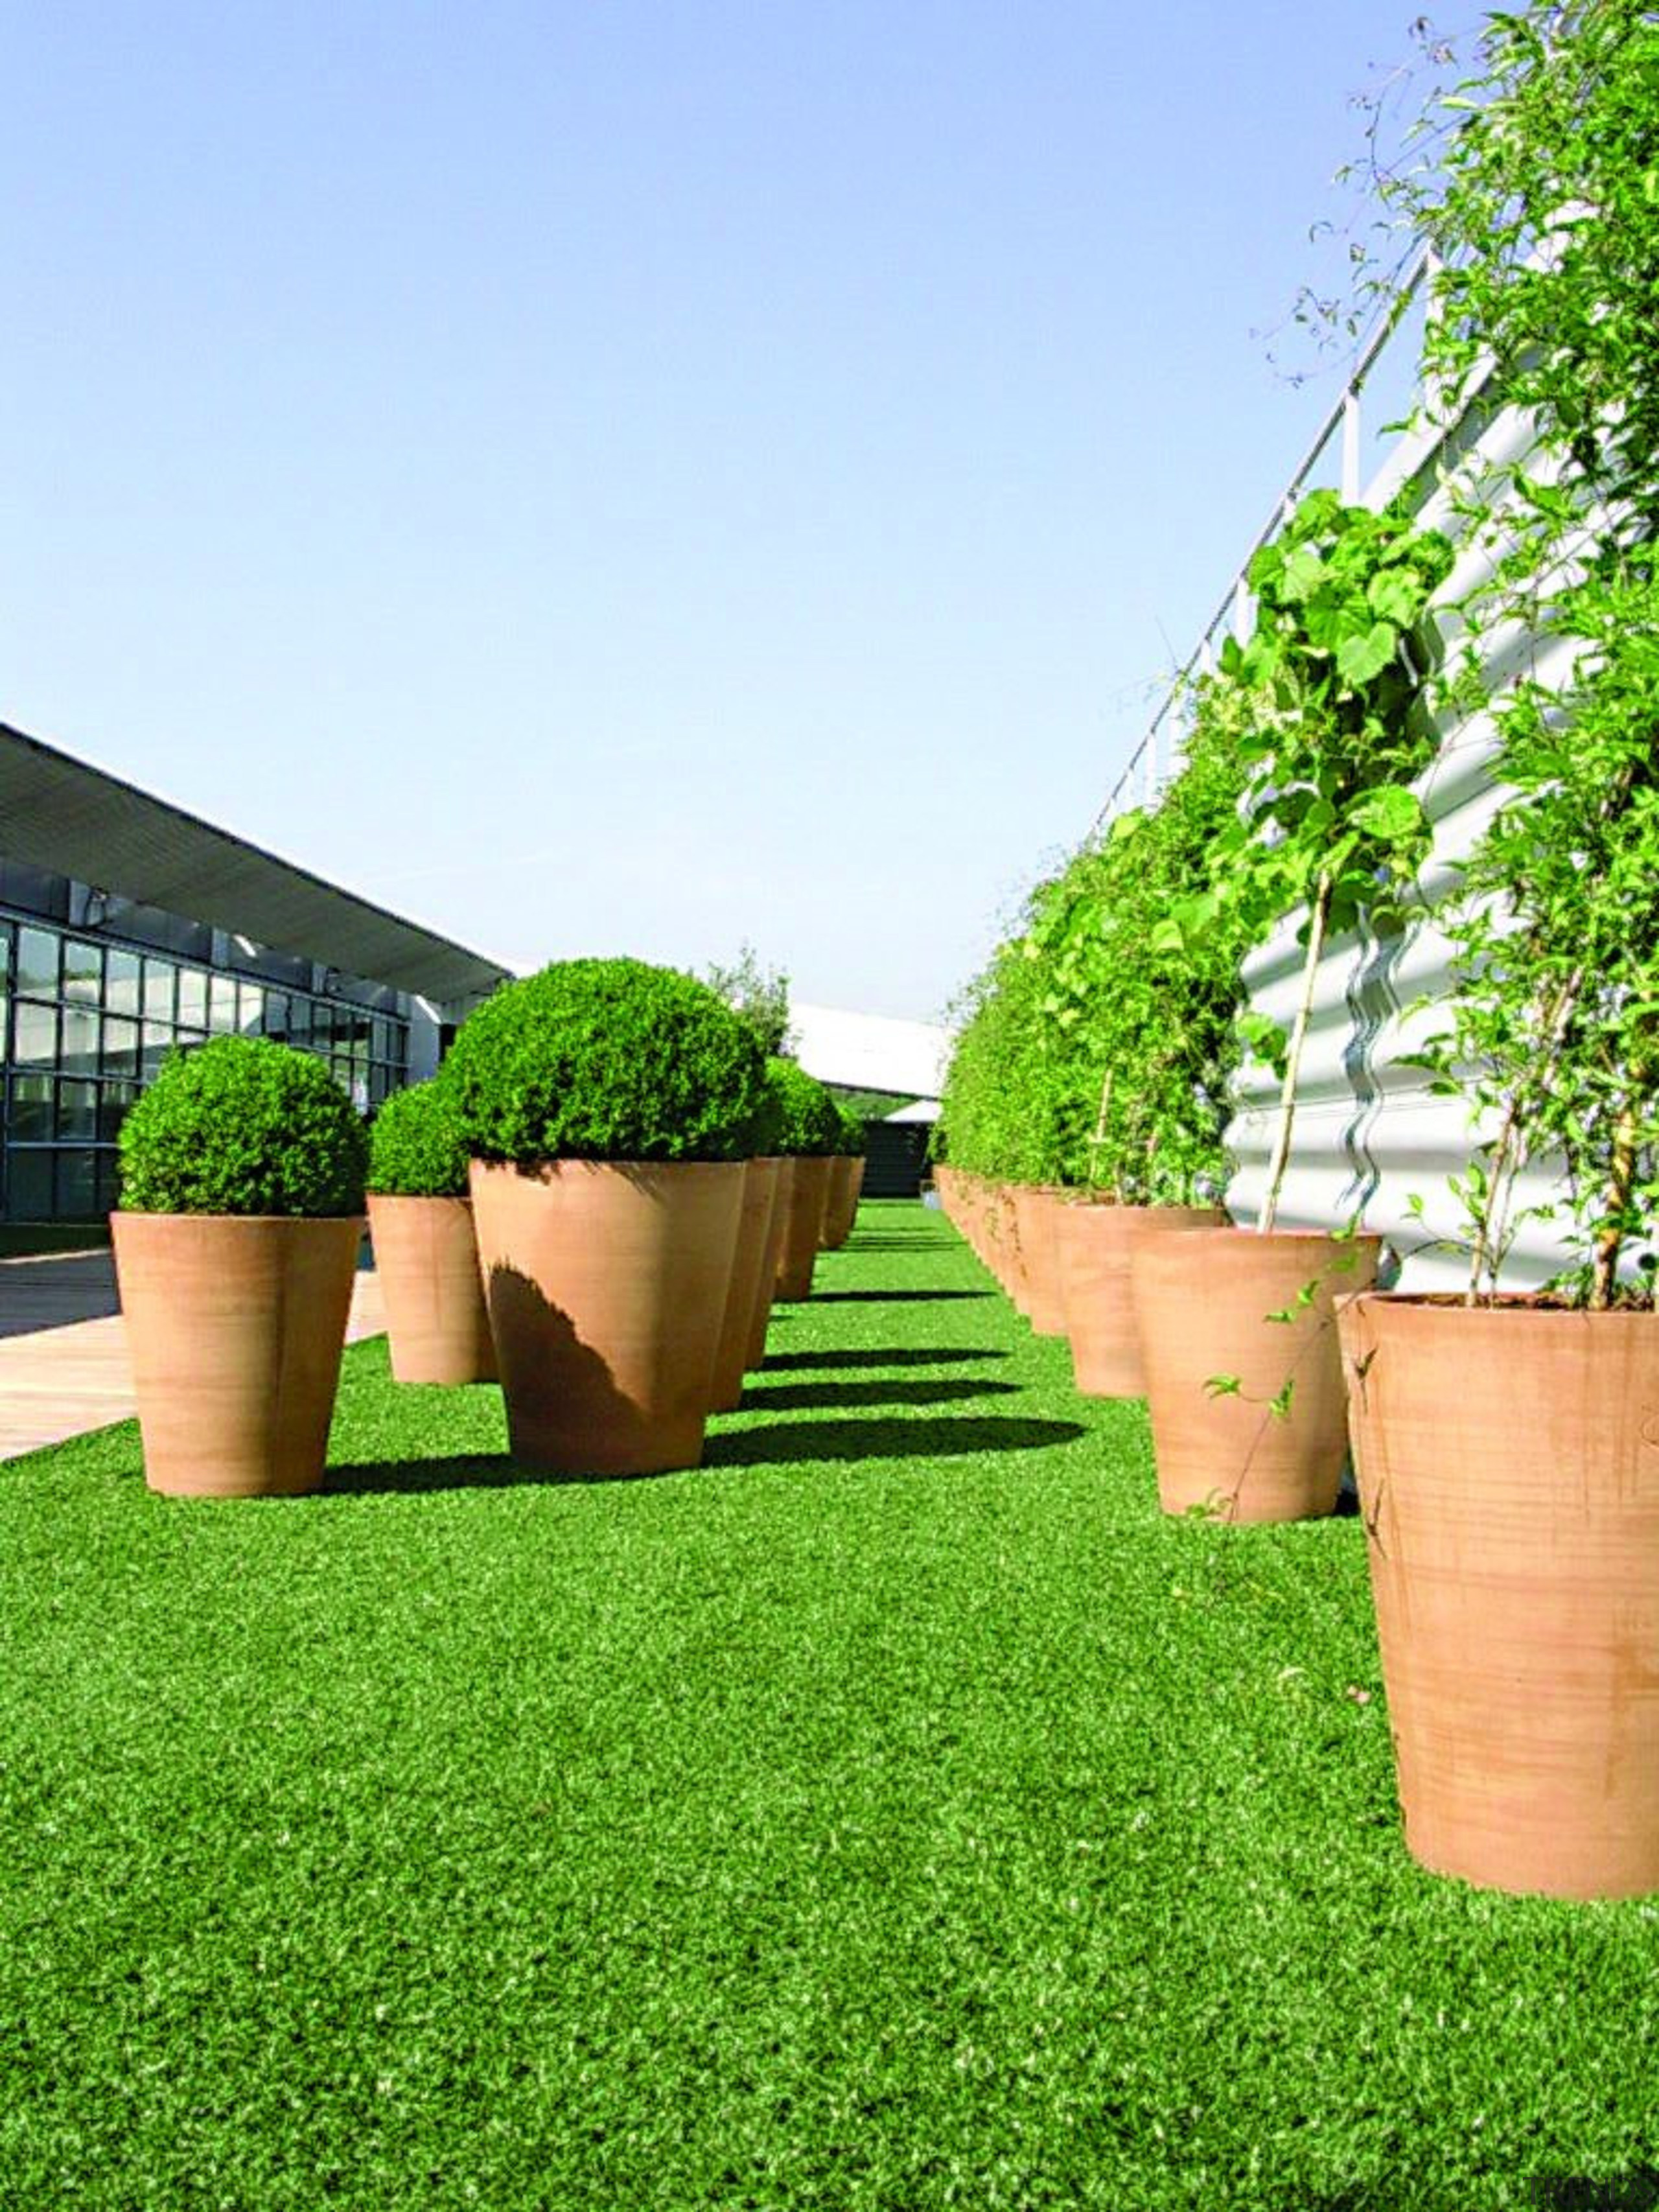 Commercial landscape - artificial turf | backyard | artificial turf, backyard, flowerpot, garden, grass, grass family, landscaping, lawn, plant, shrub, tree, yard, green